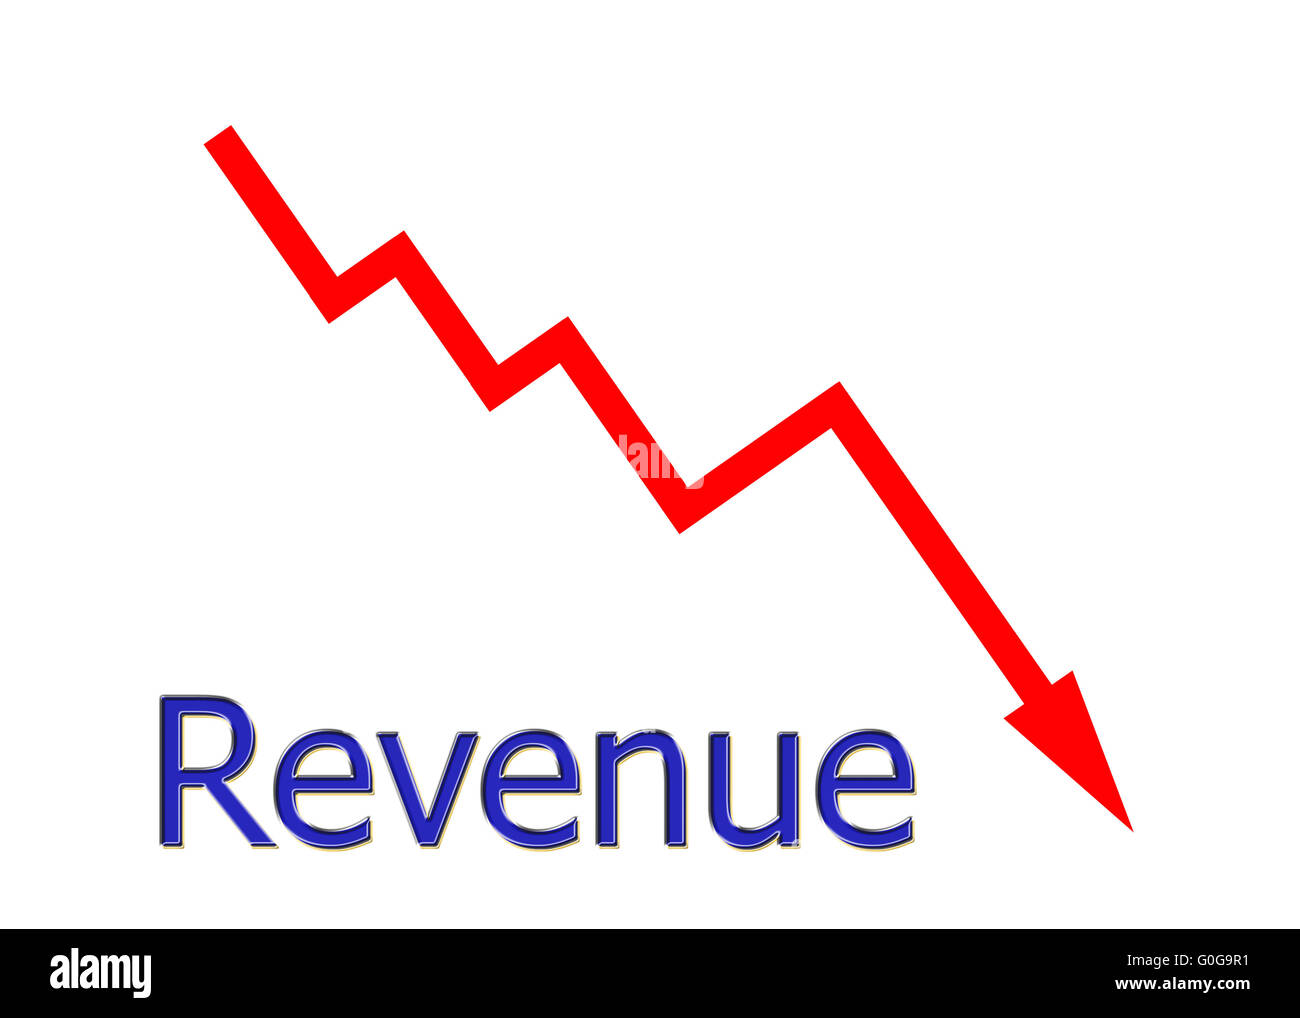 red diagram downwards Stock Photo